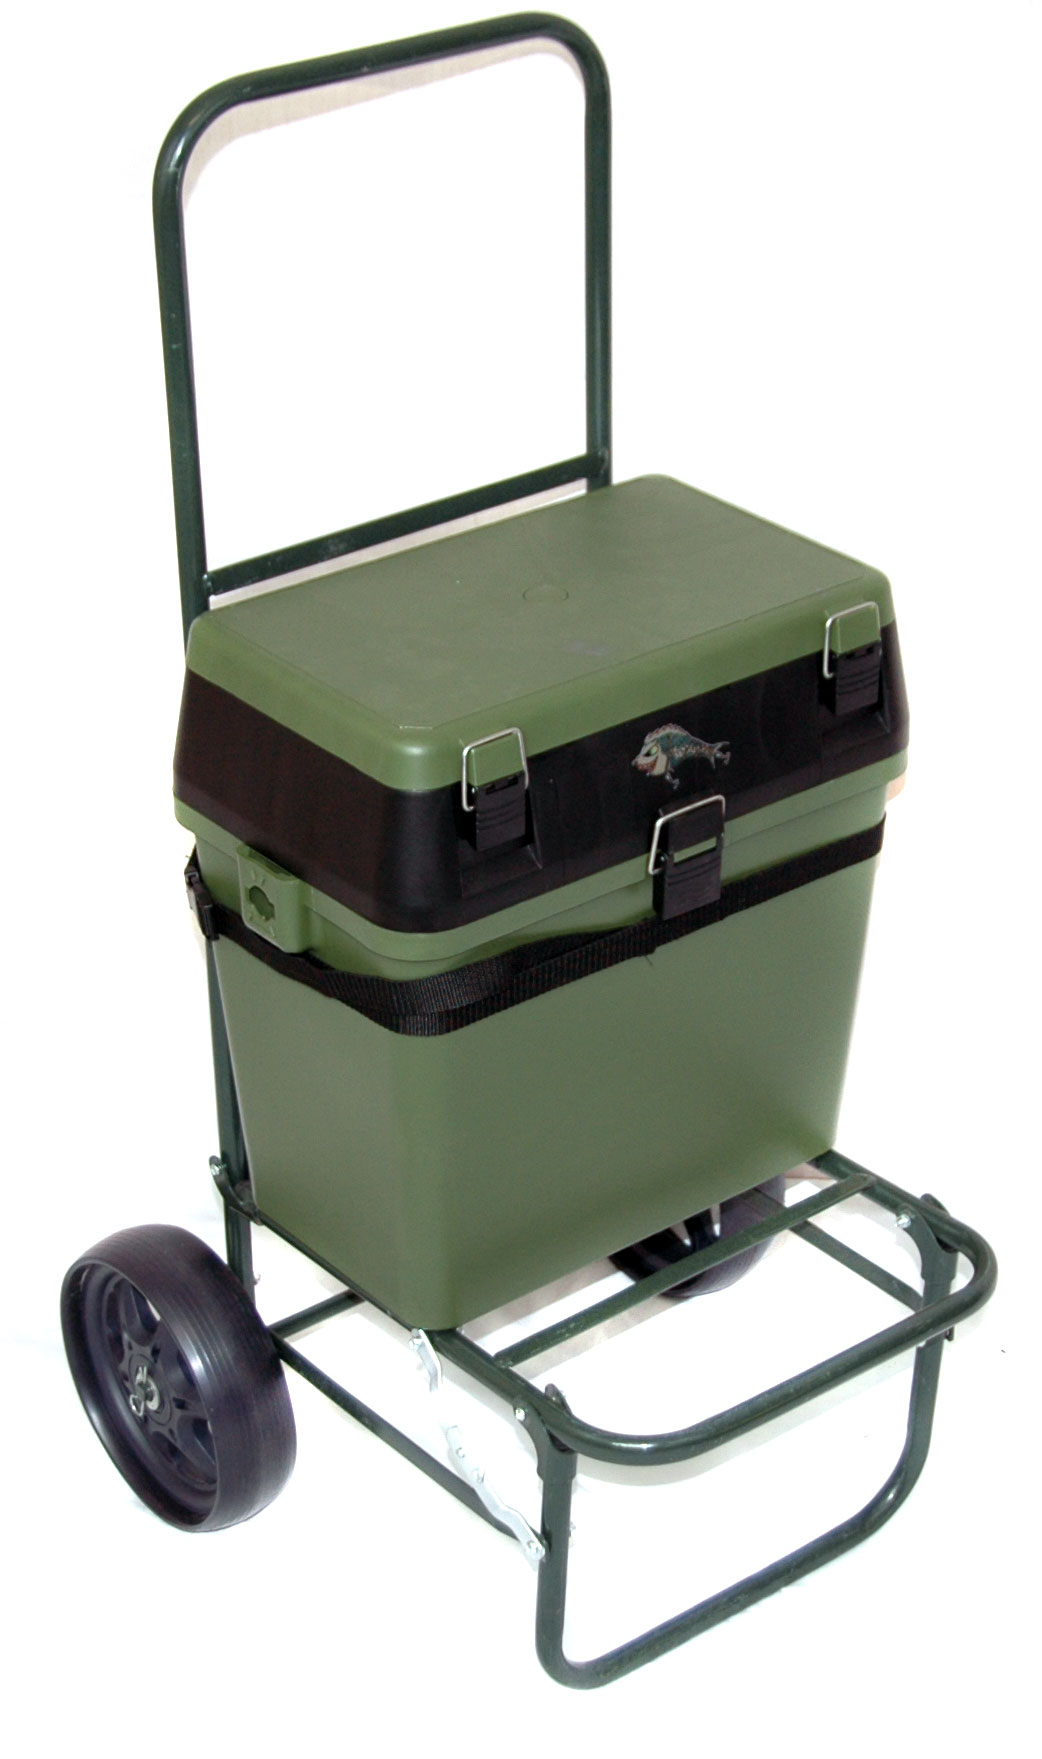 fishing roving chair yoga ball bison seatbox trolley complete with seat box ebay